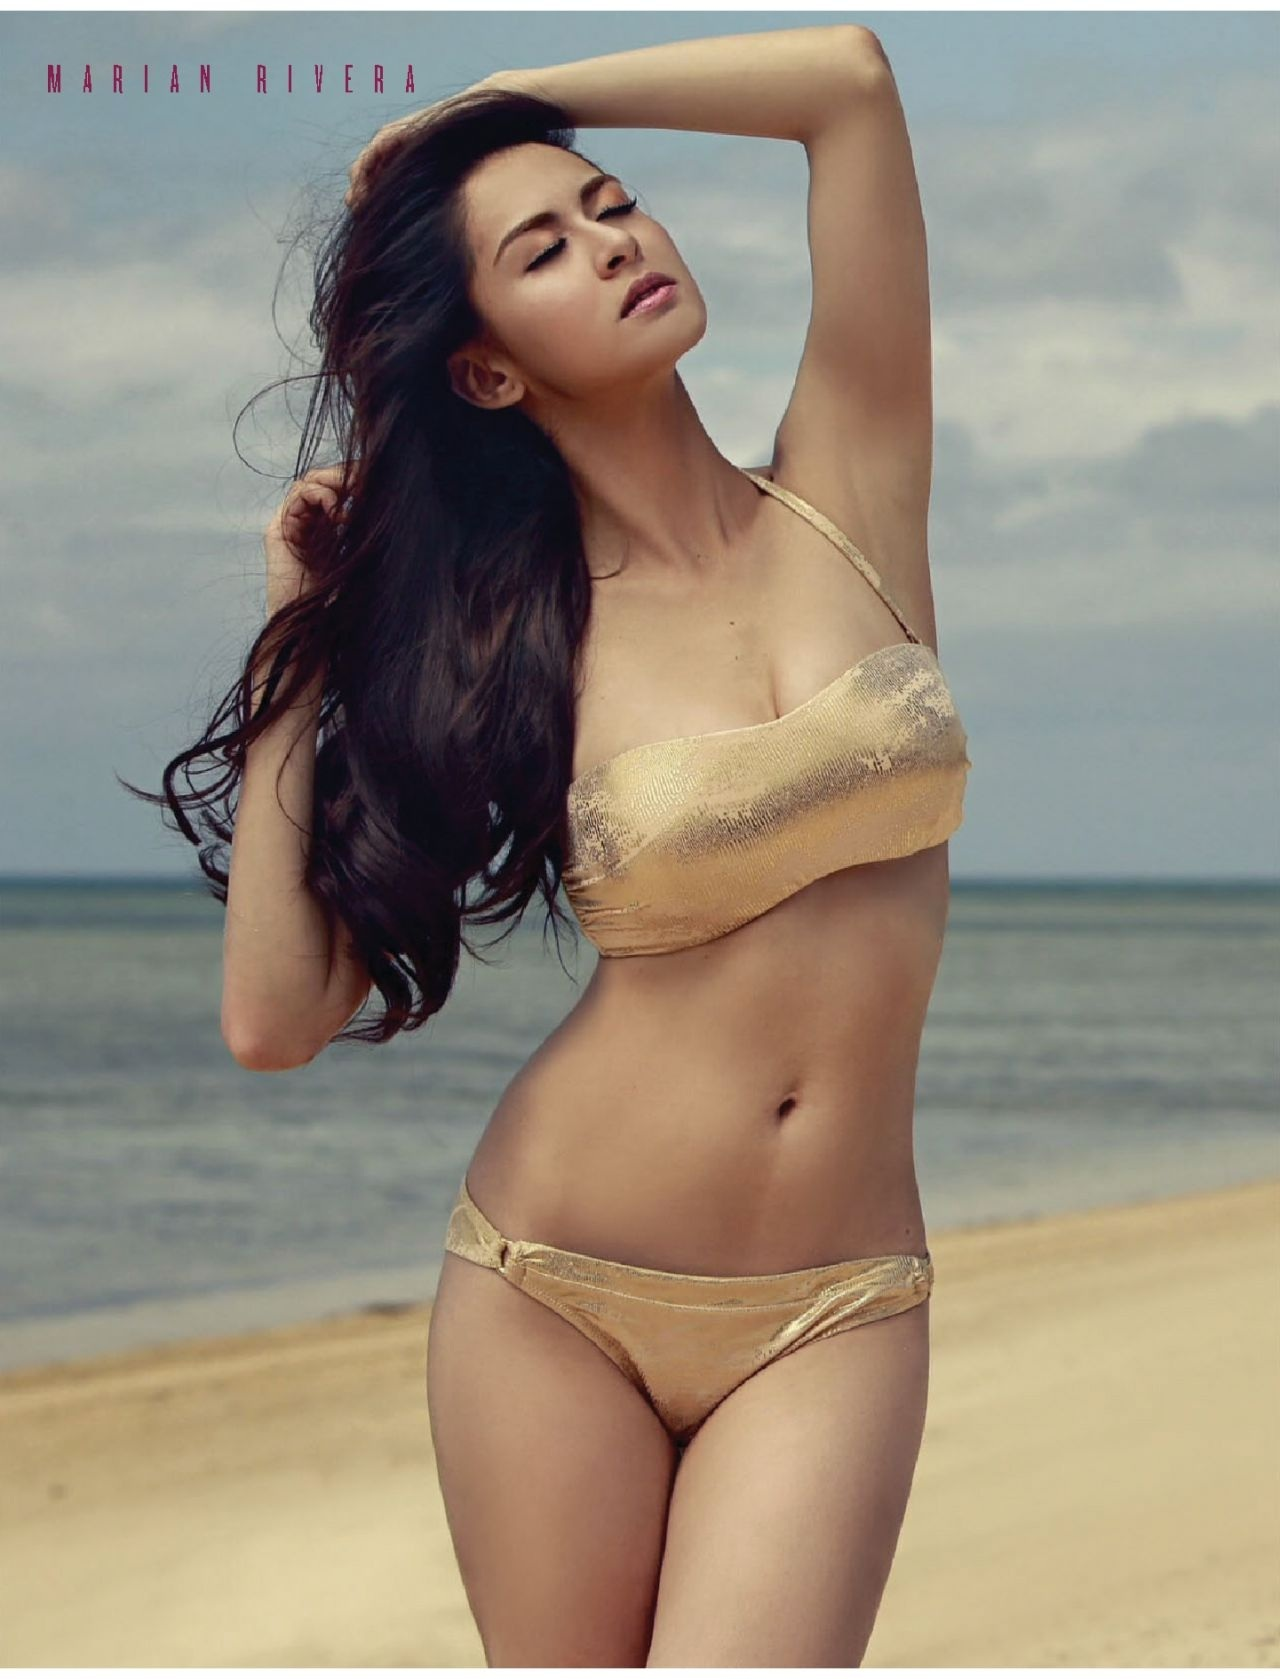 Marian Rivera Fhm Magazine Philippines March Issue Marian Rivera